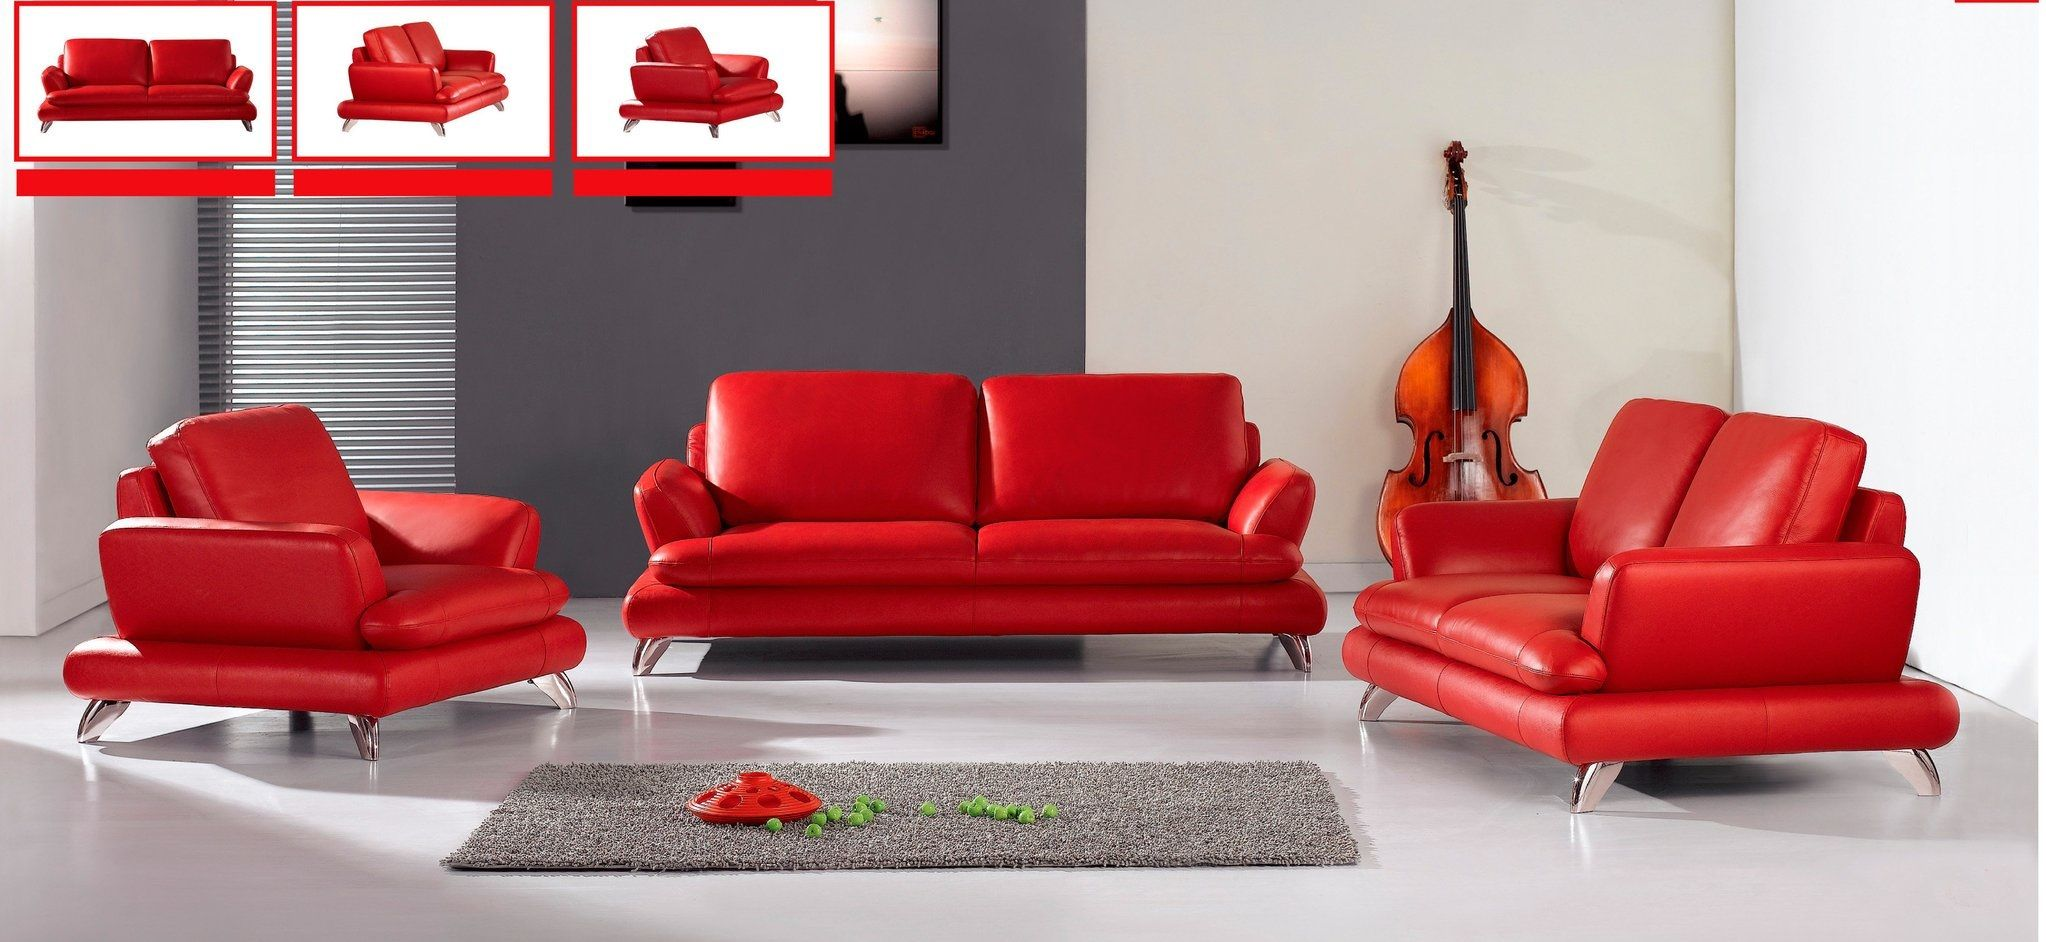 Cool Modern Red Leather Sofa Best Modern Red Leather Sofa 37 Sofa Design Ideas With Modern Red Leather Sofa Http Sofascouch Com Modern With Images Modern Leather Sofa